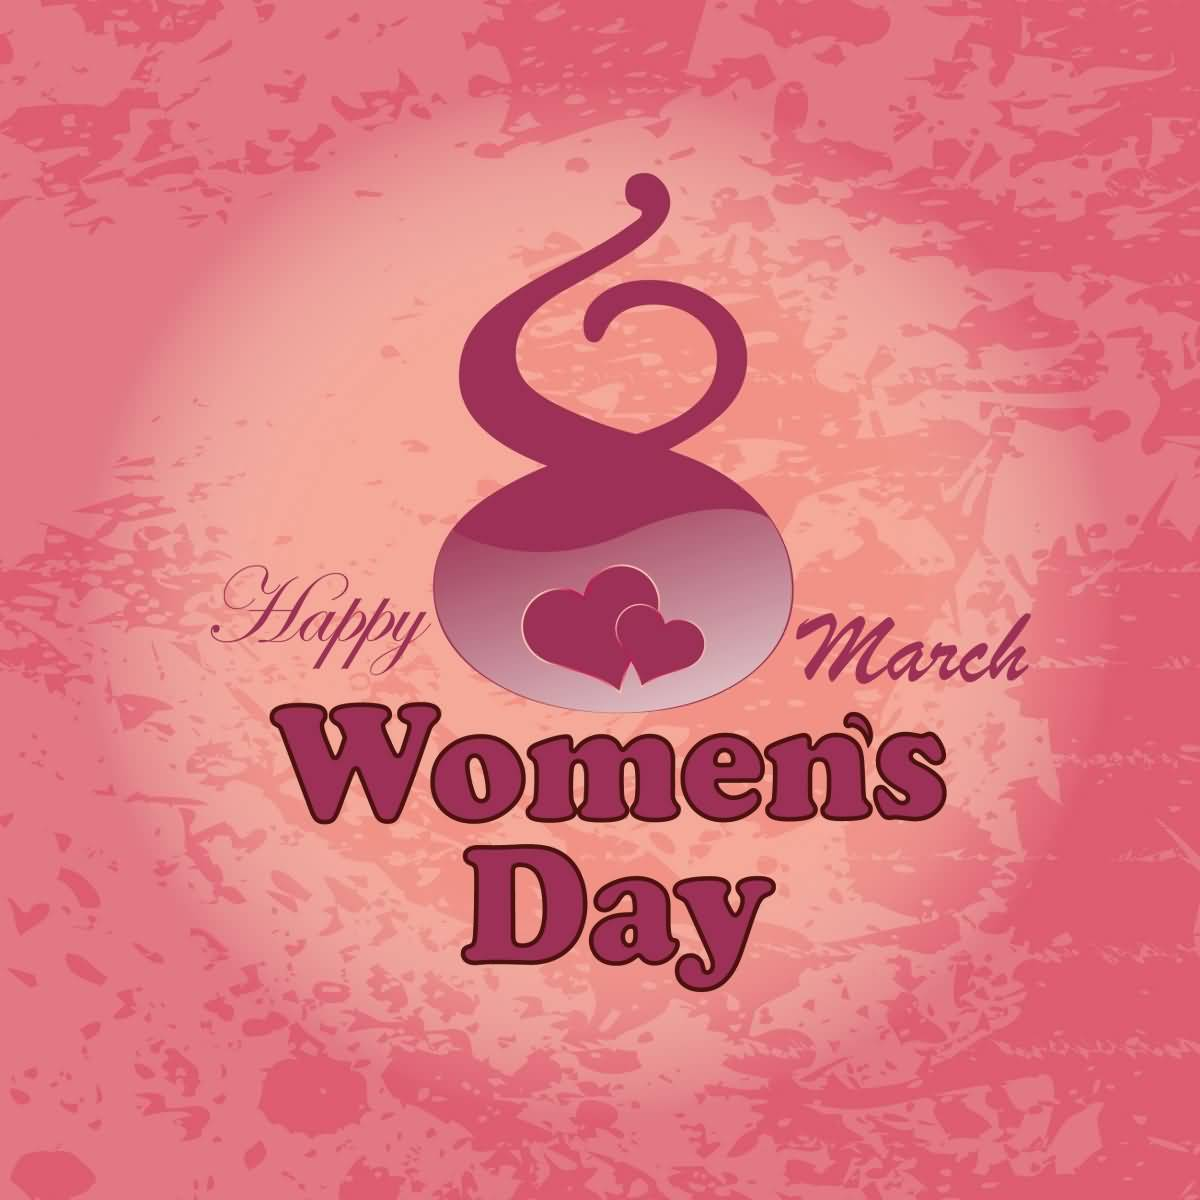 Women's Day Image for Mother, Wife, Daughter & Sister